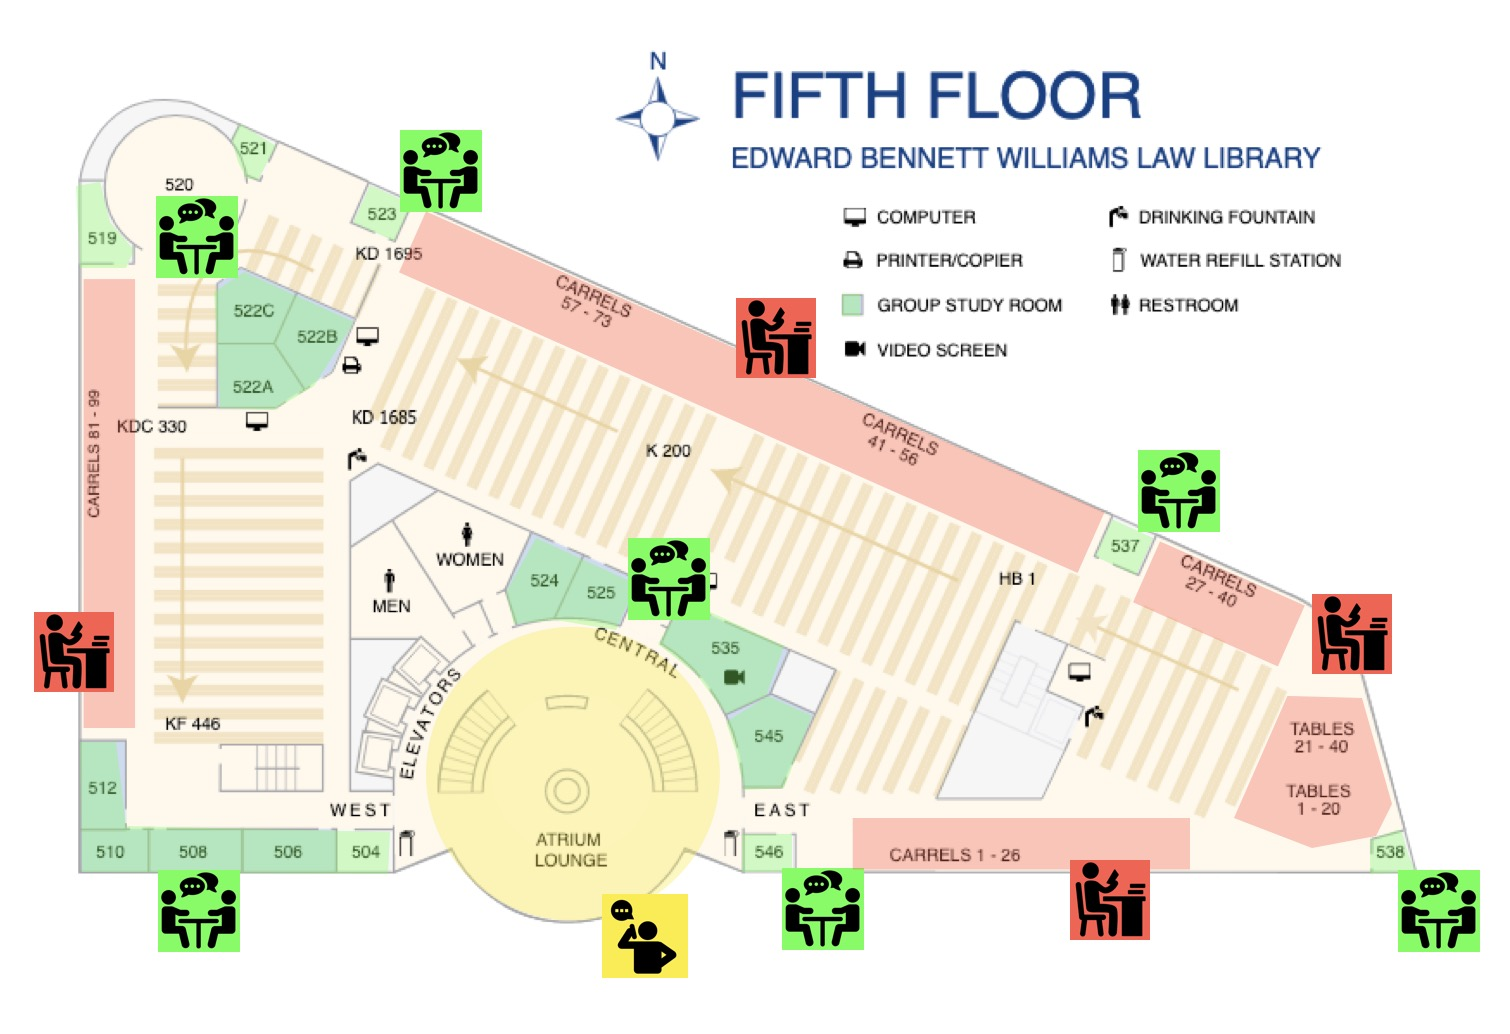 Map of Williams Library Fifth Floor with noise zones indicated